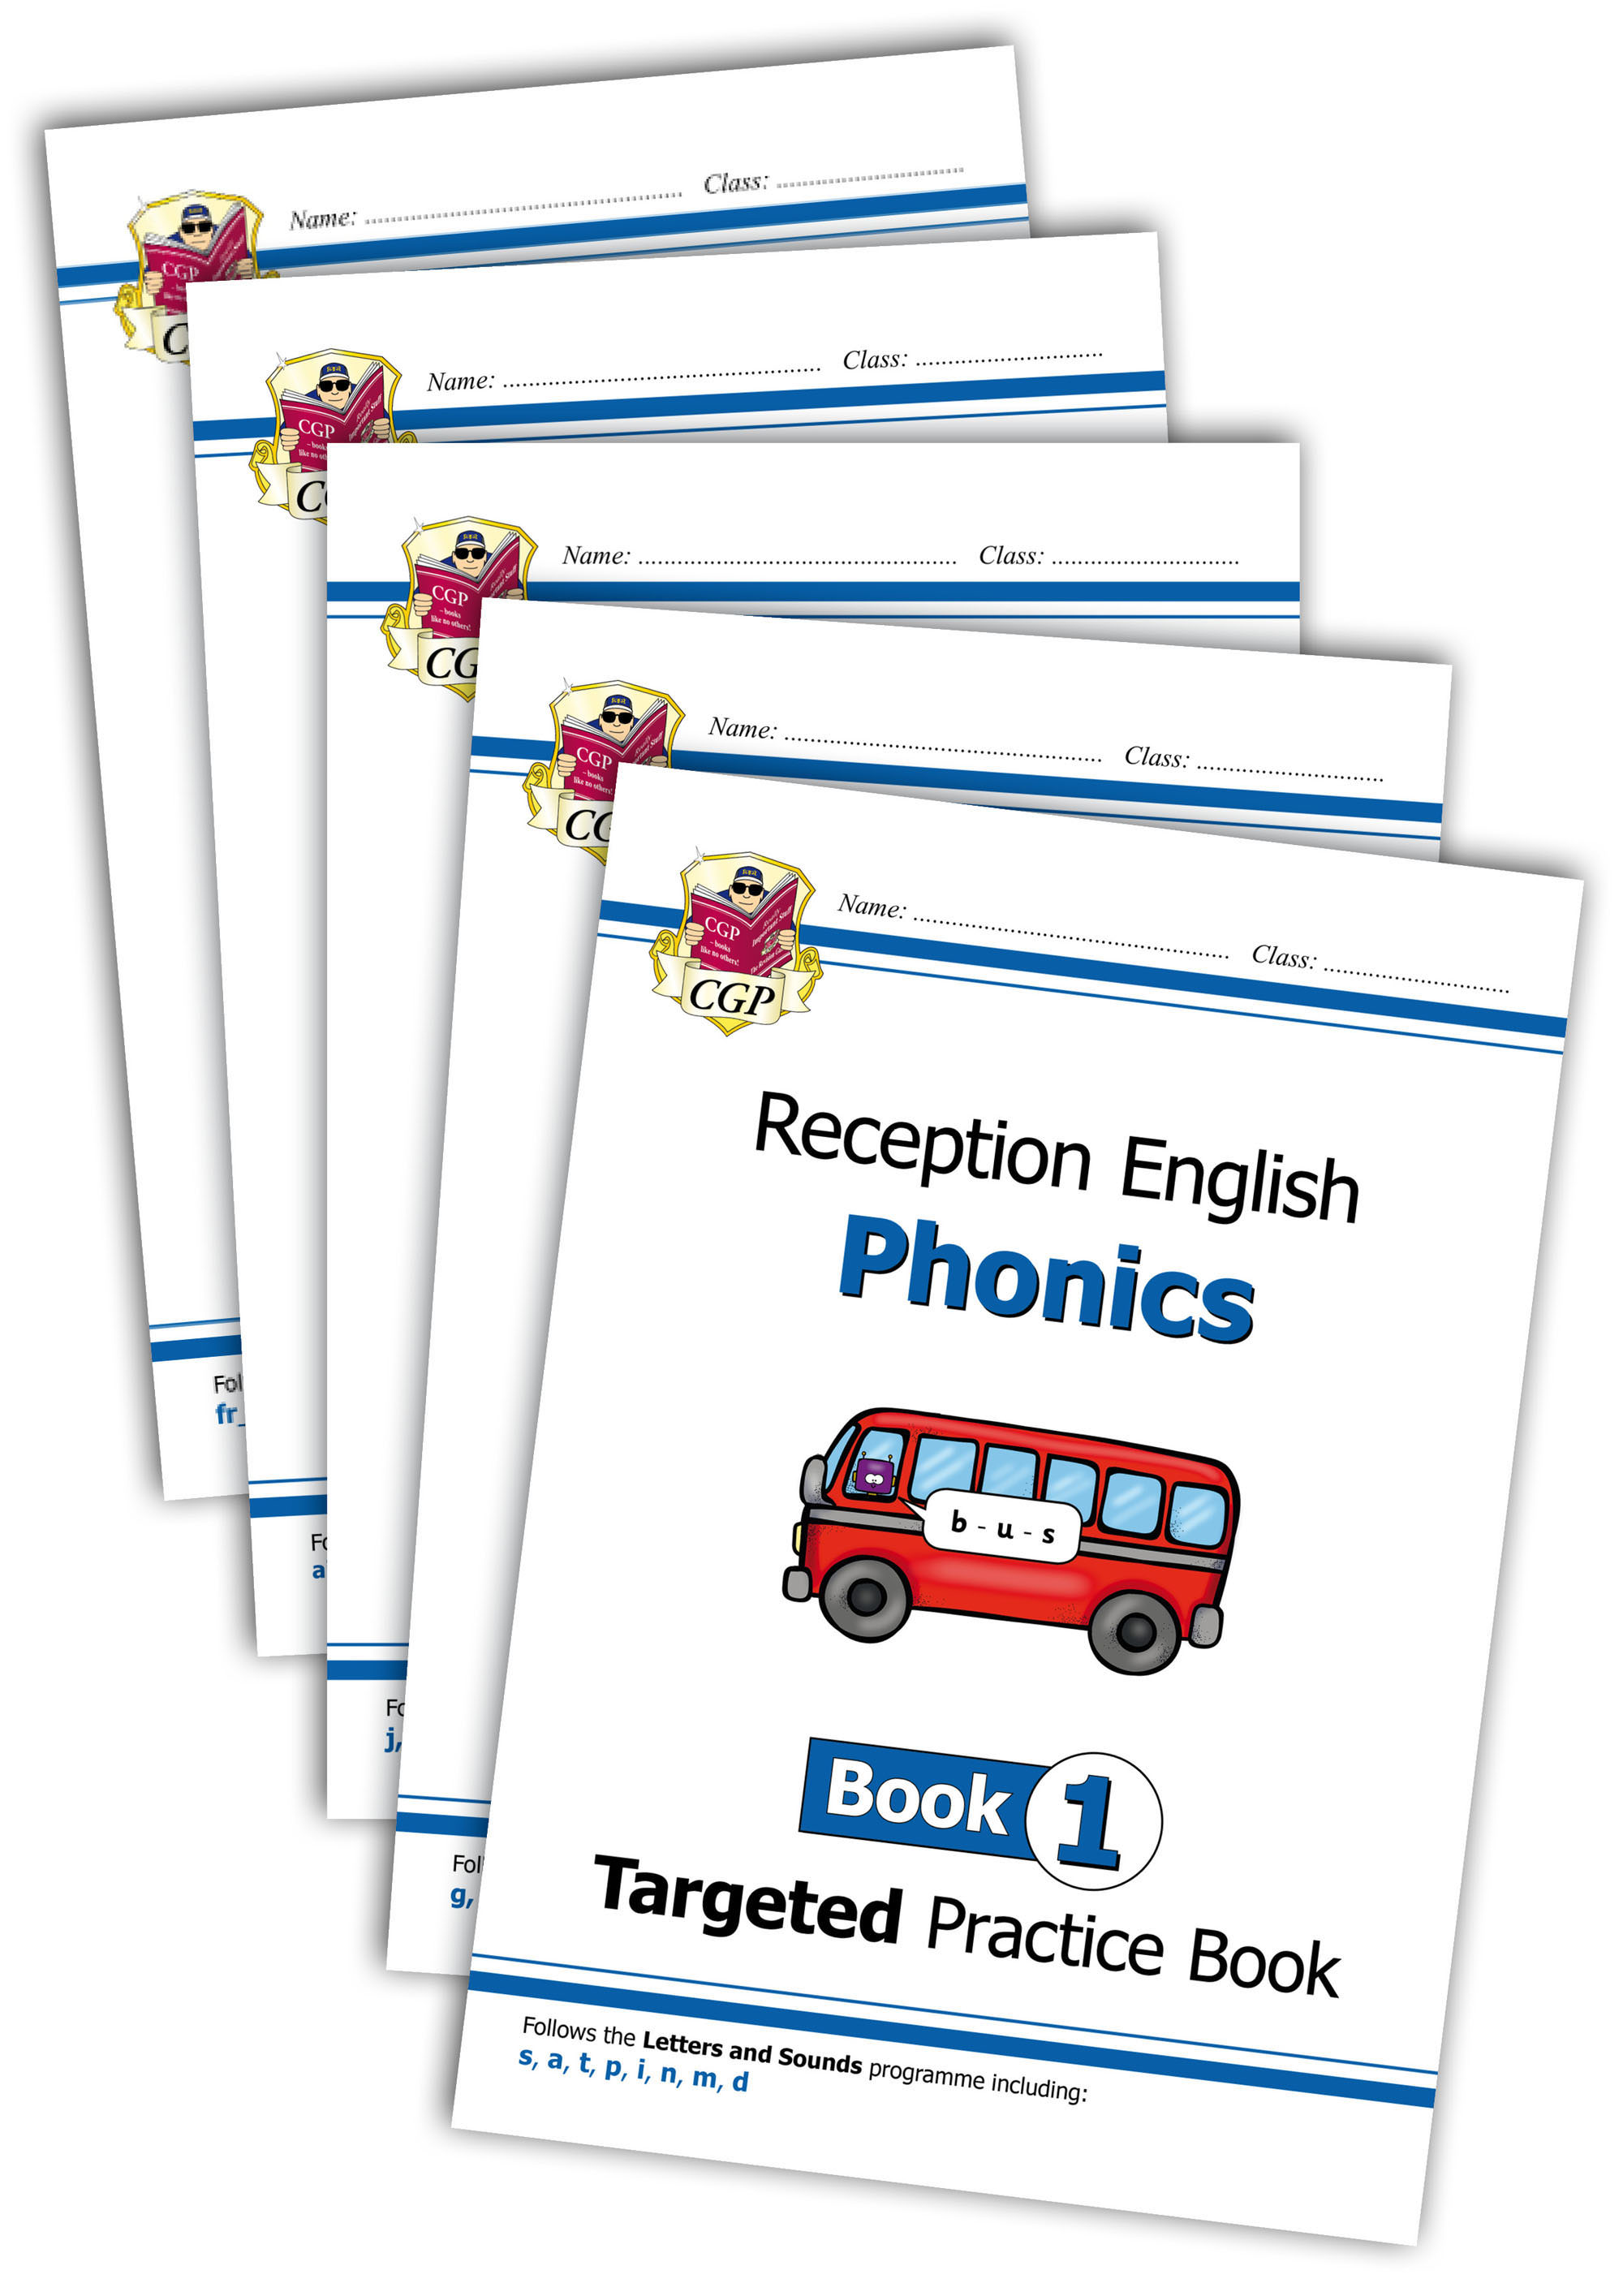 EROWB11 - English Targeted Practice Book Bundle: Phonics - Reception Books 1-5